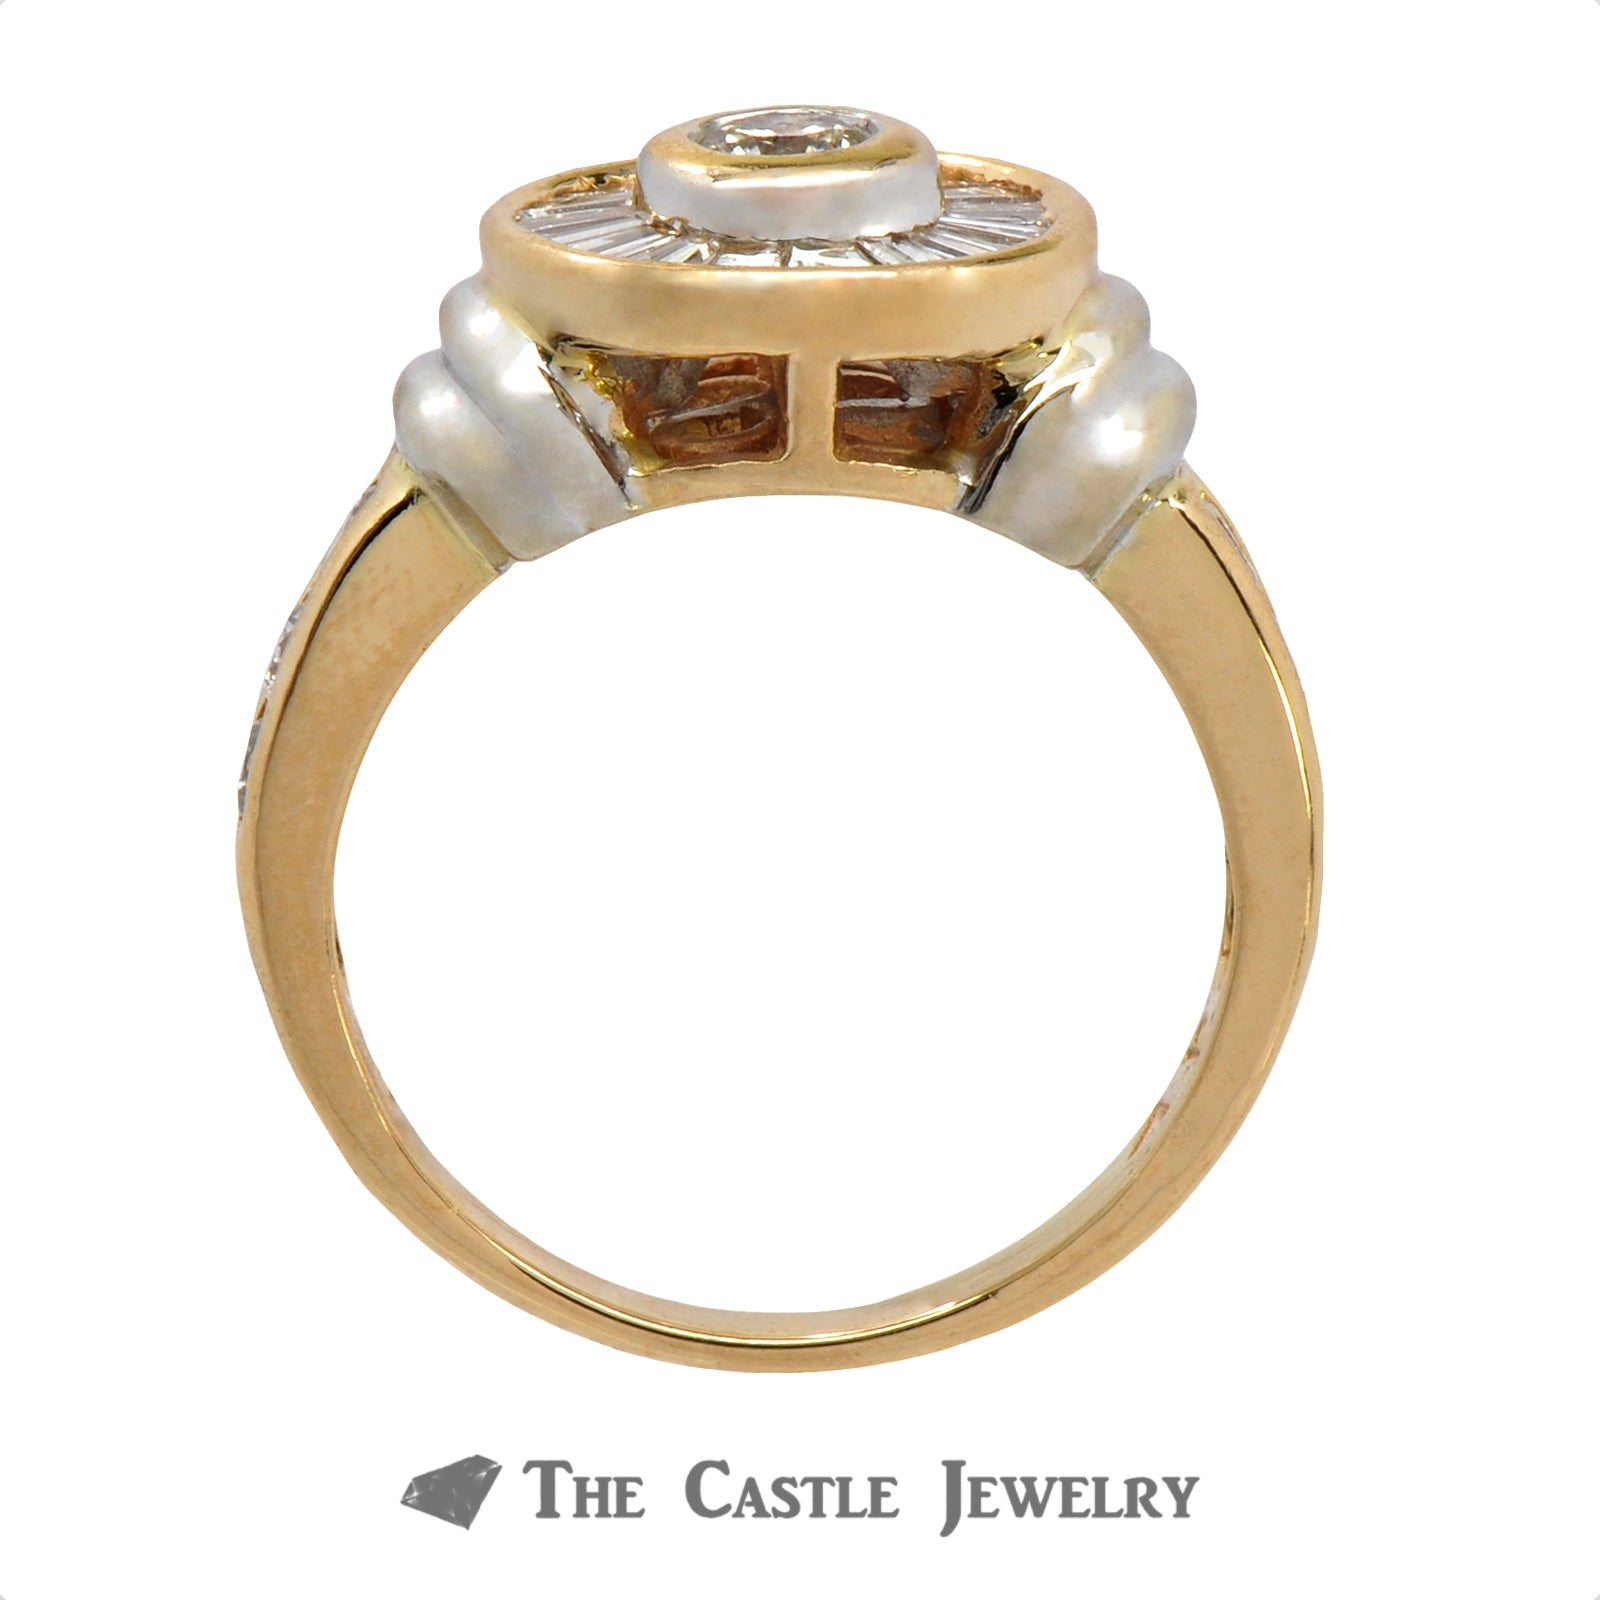 Circular Diamond Ring with Baguette Halo Accents in 14k Two Tone Gold-2